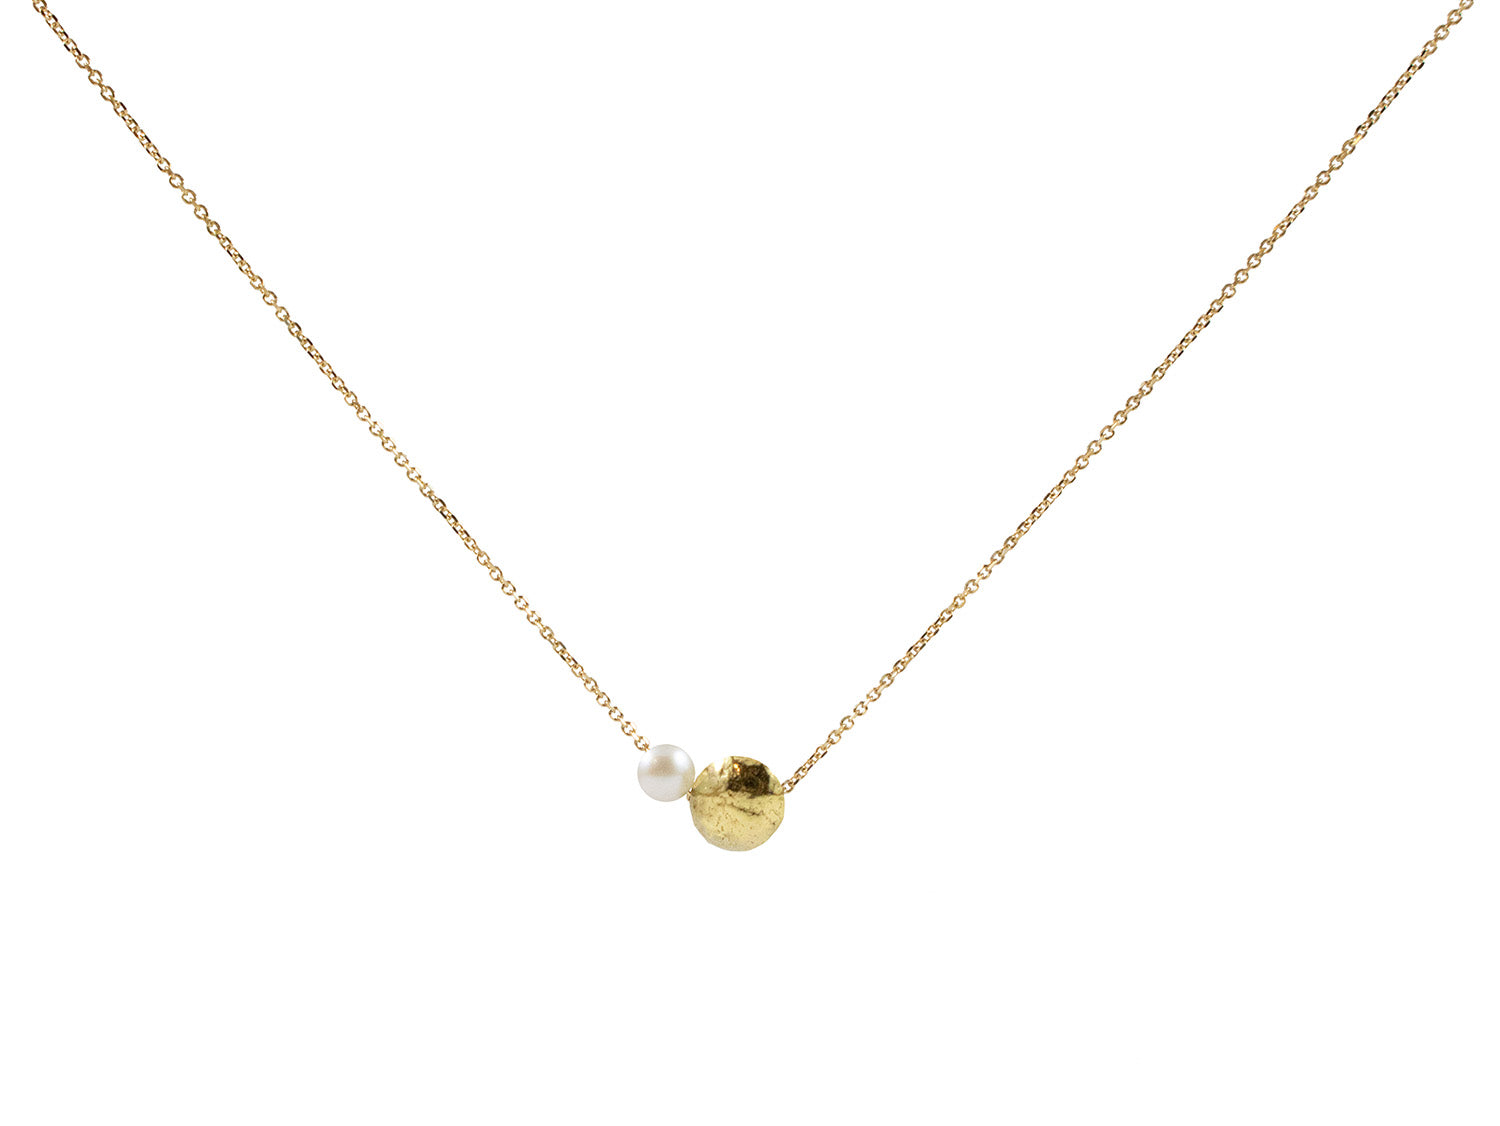 18K Yellow Gold Bead and Pearl Necklace